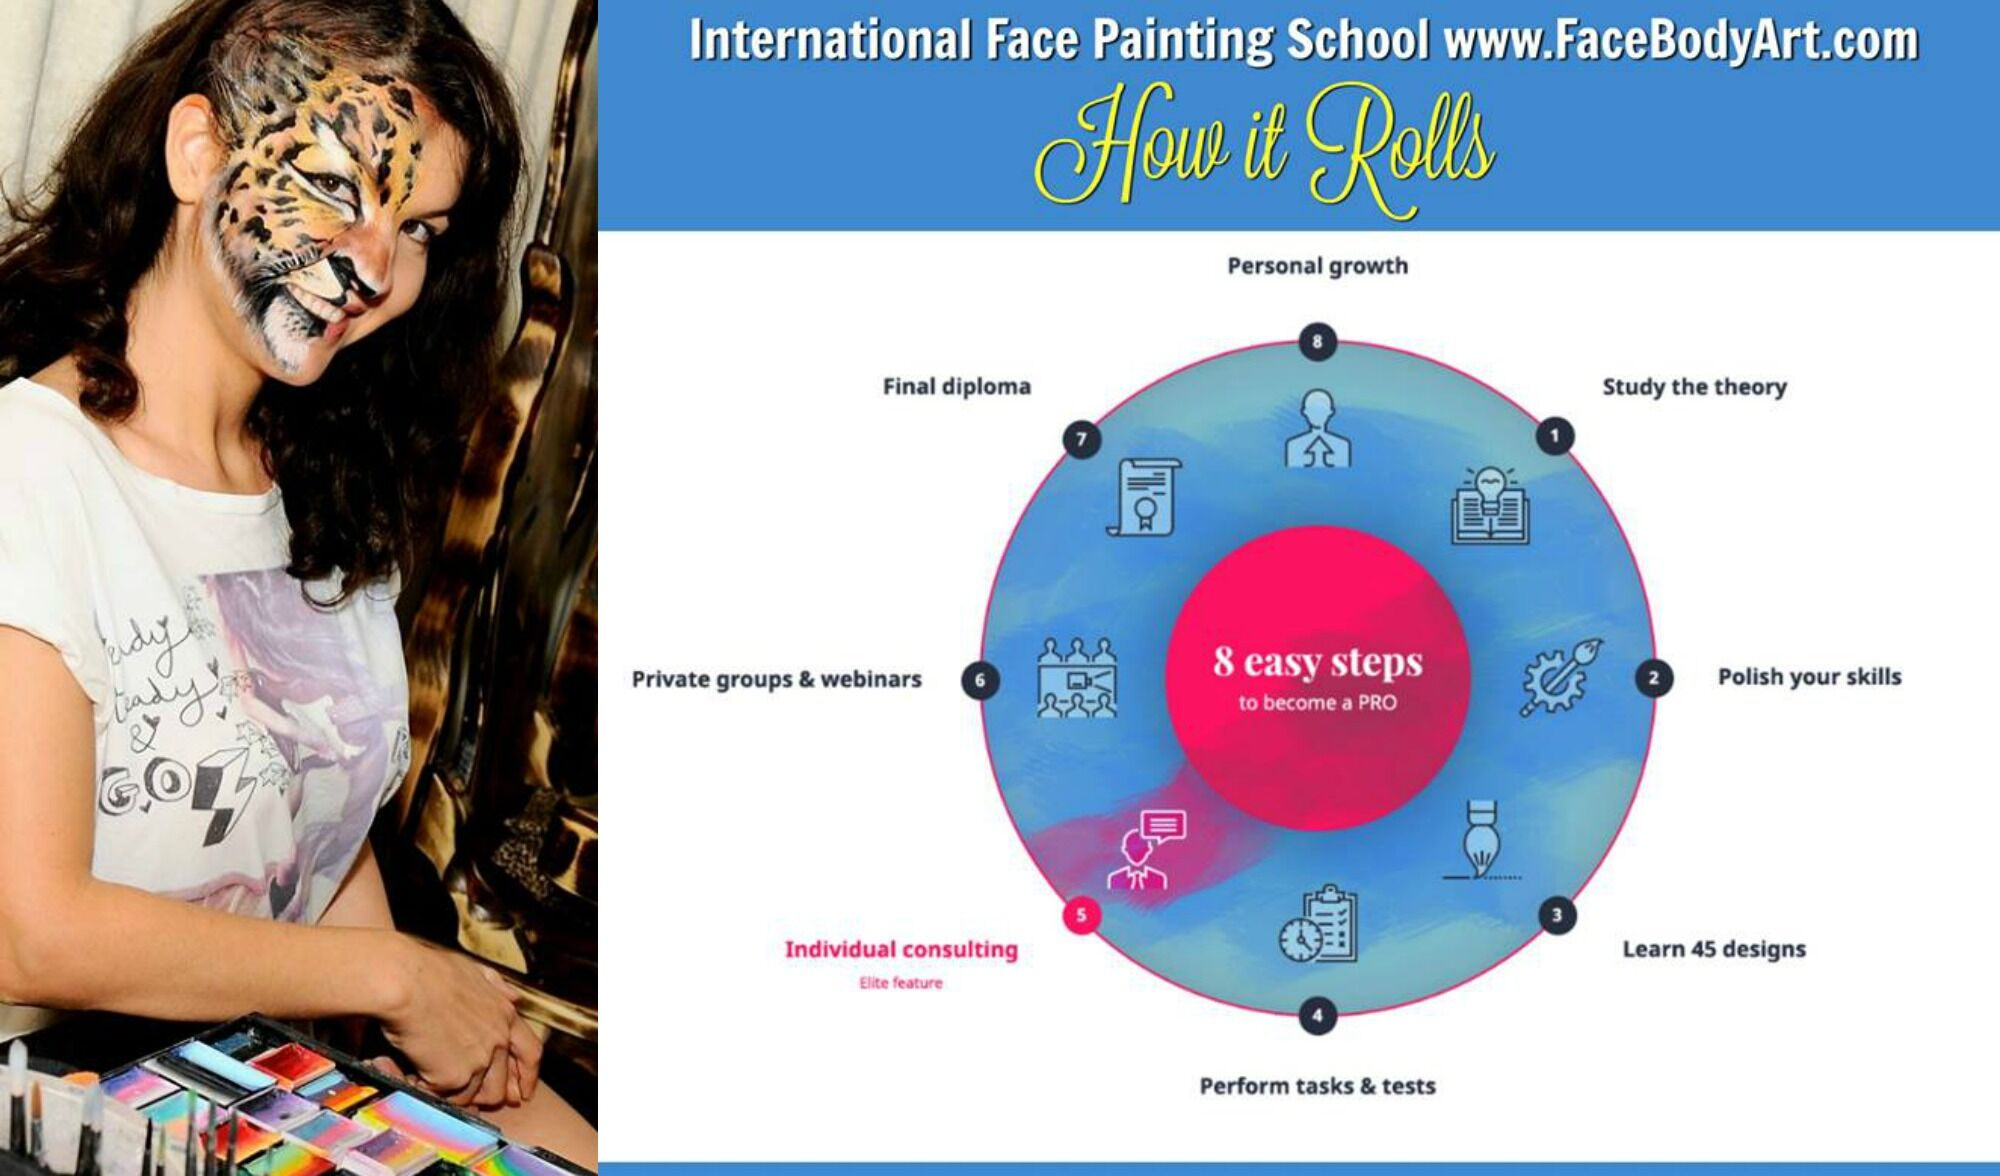 Olga Murasev's International Face Painting School  How it rolls